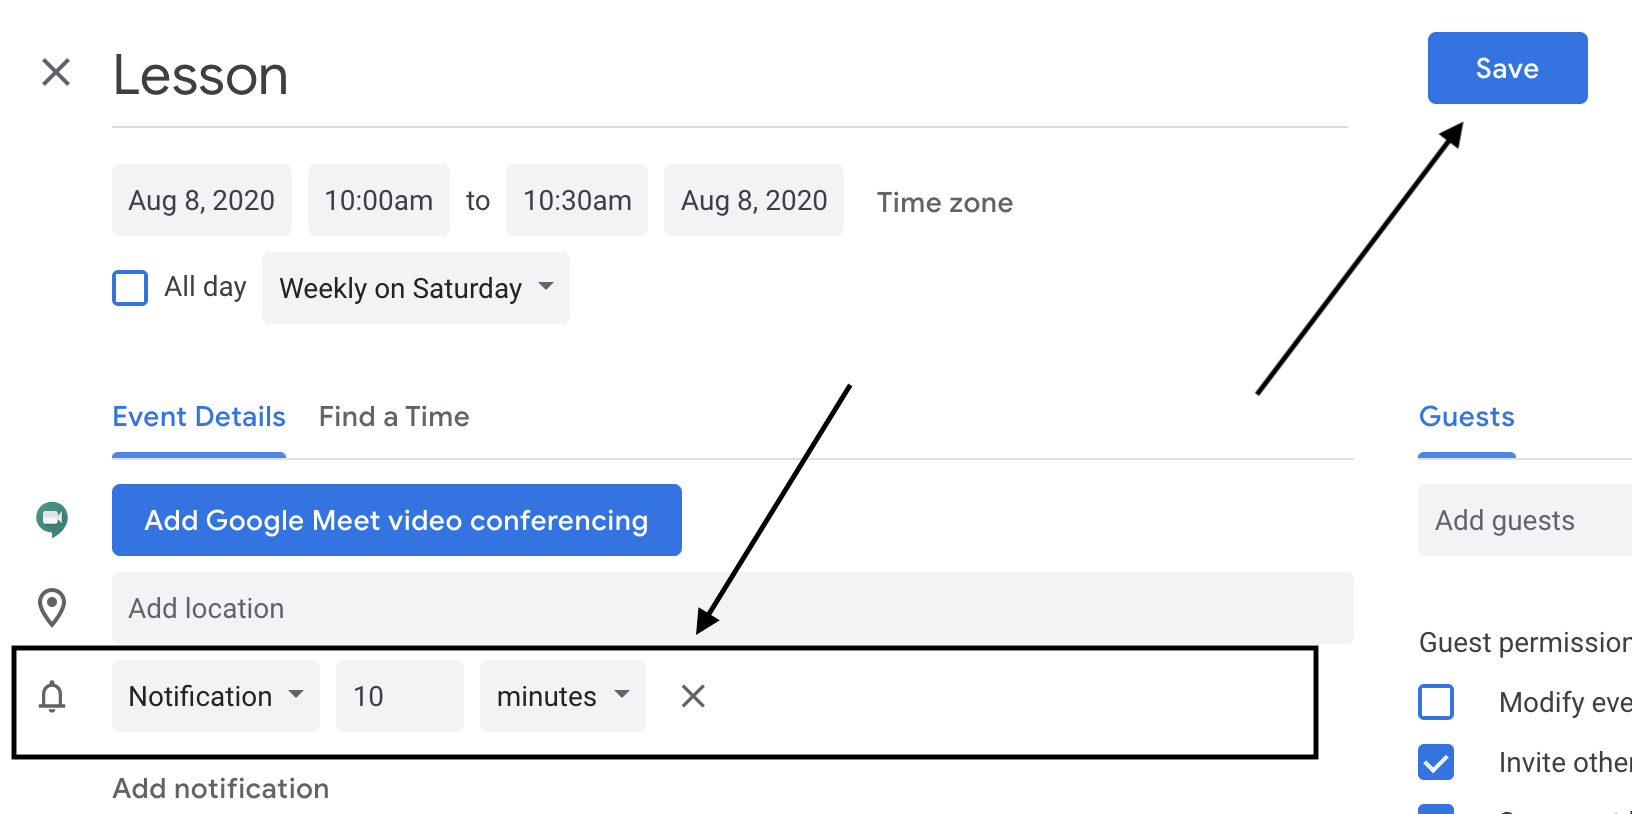 How to Set Lesson Reminders Google Cal w/Arrows